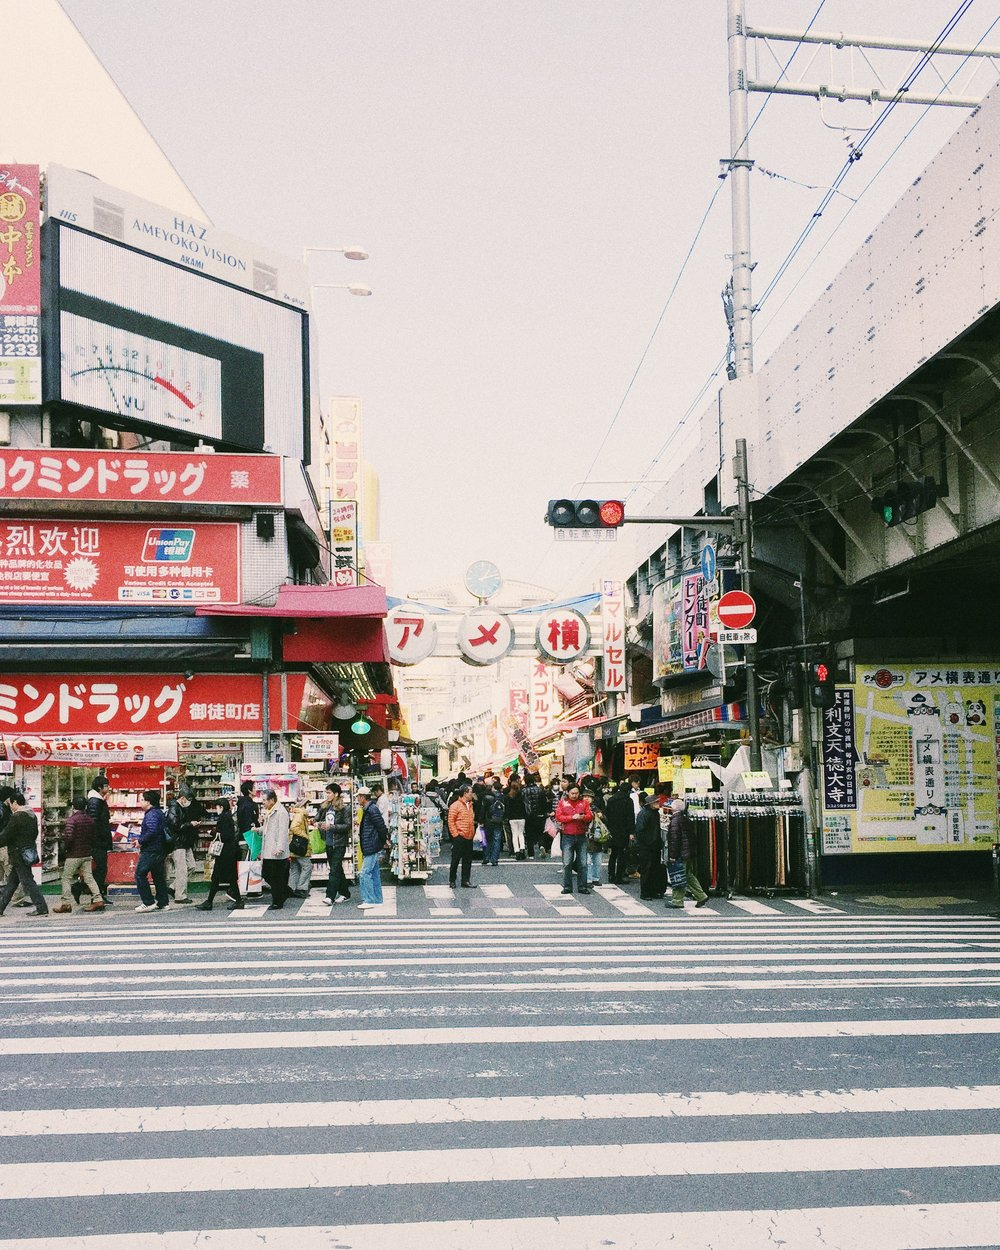 Ameyoko, Winter 2015.